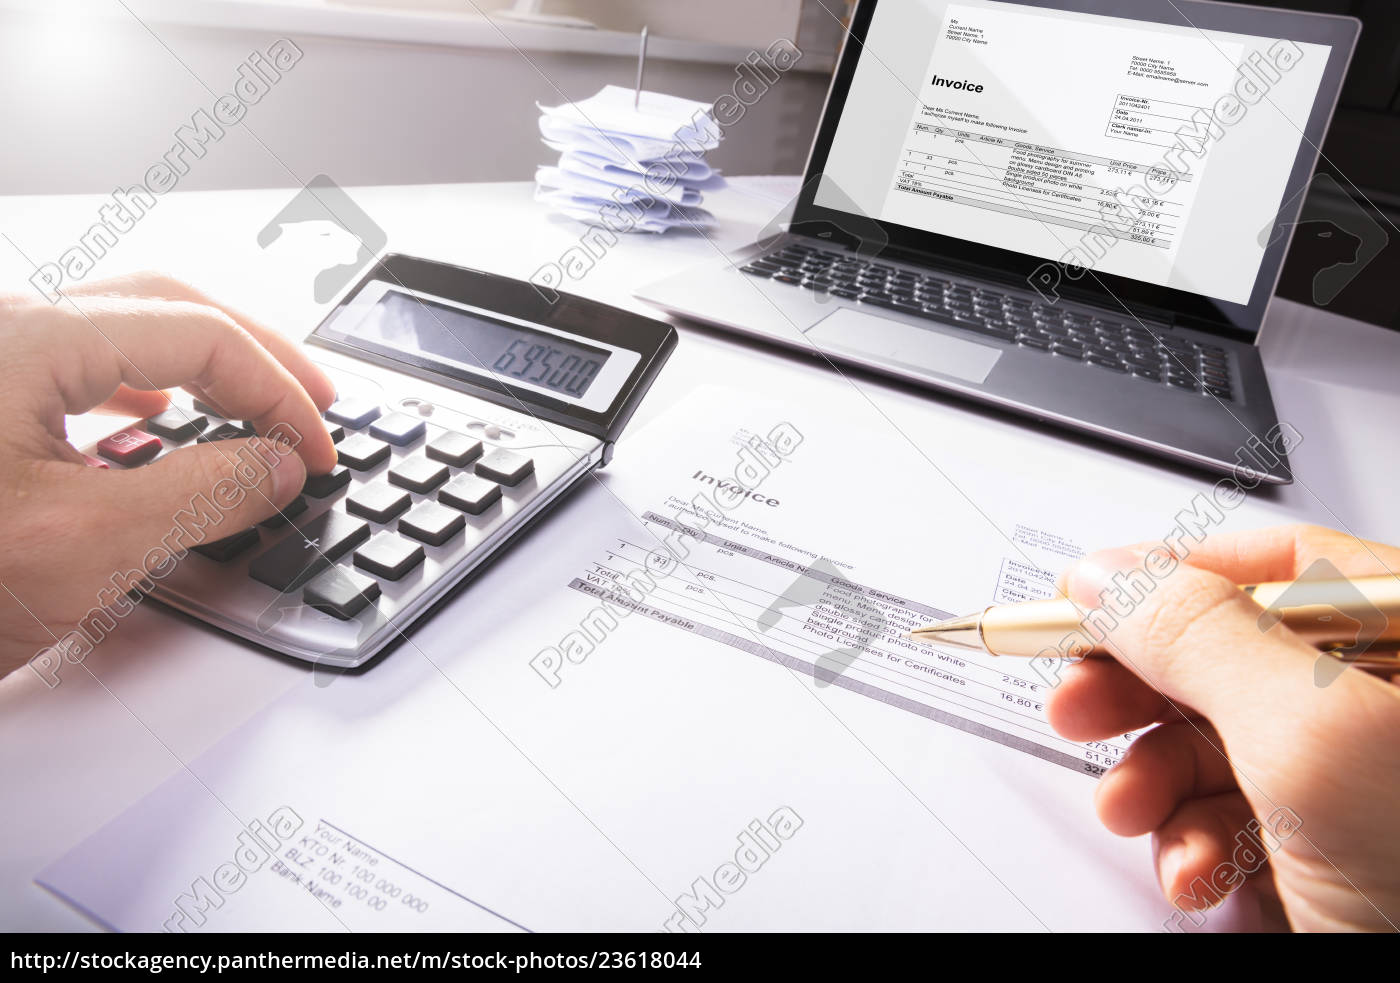 businessperson's, hand, calculating, invoice - 23618044